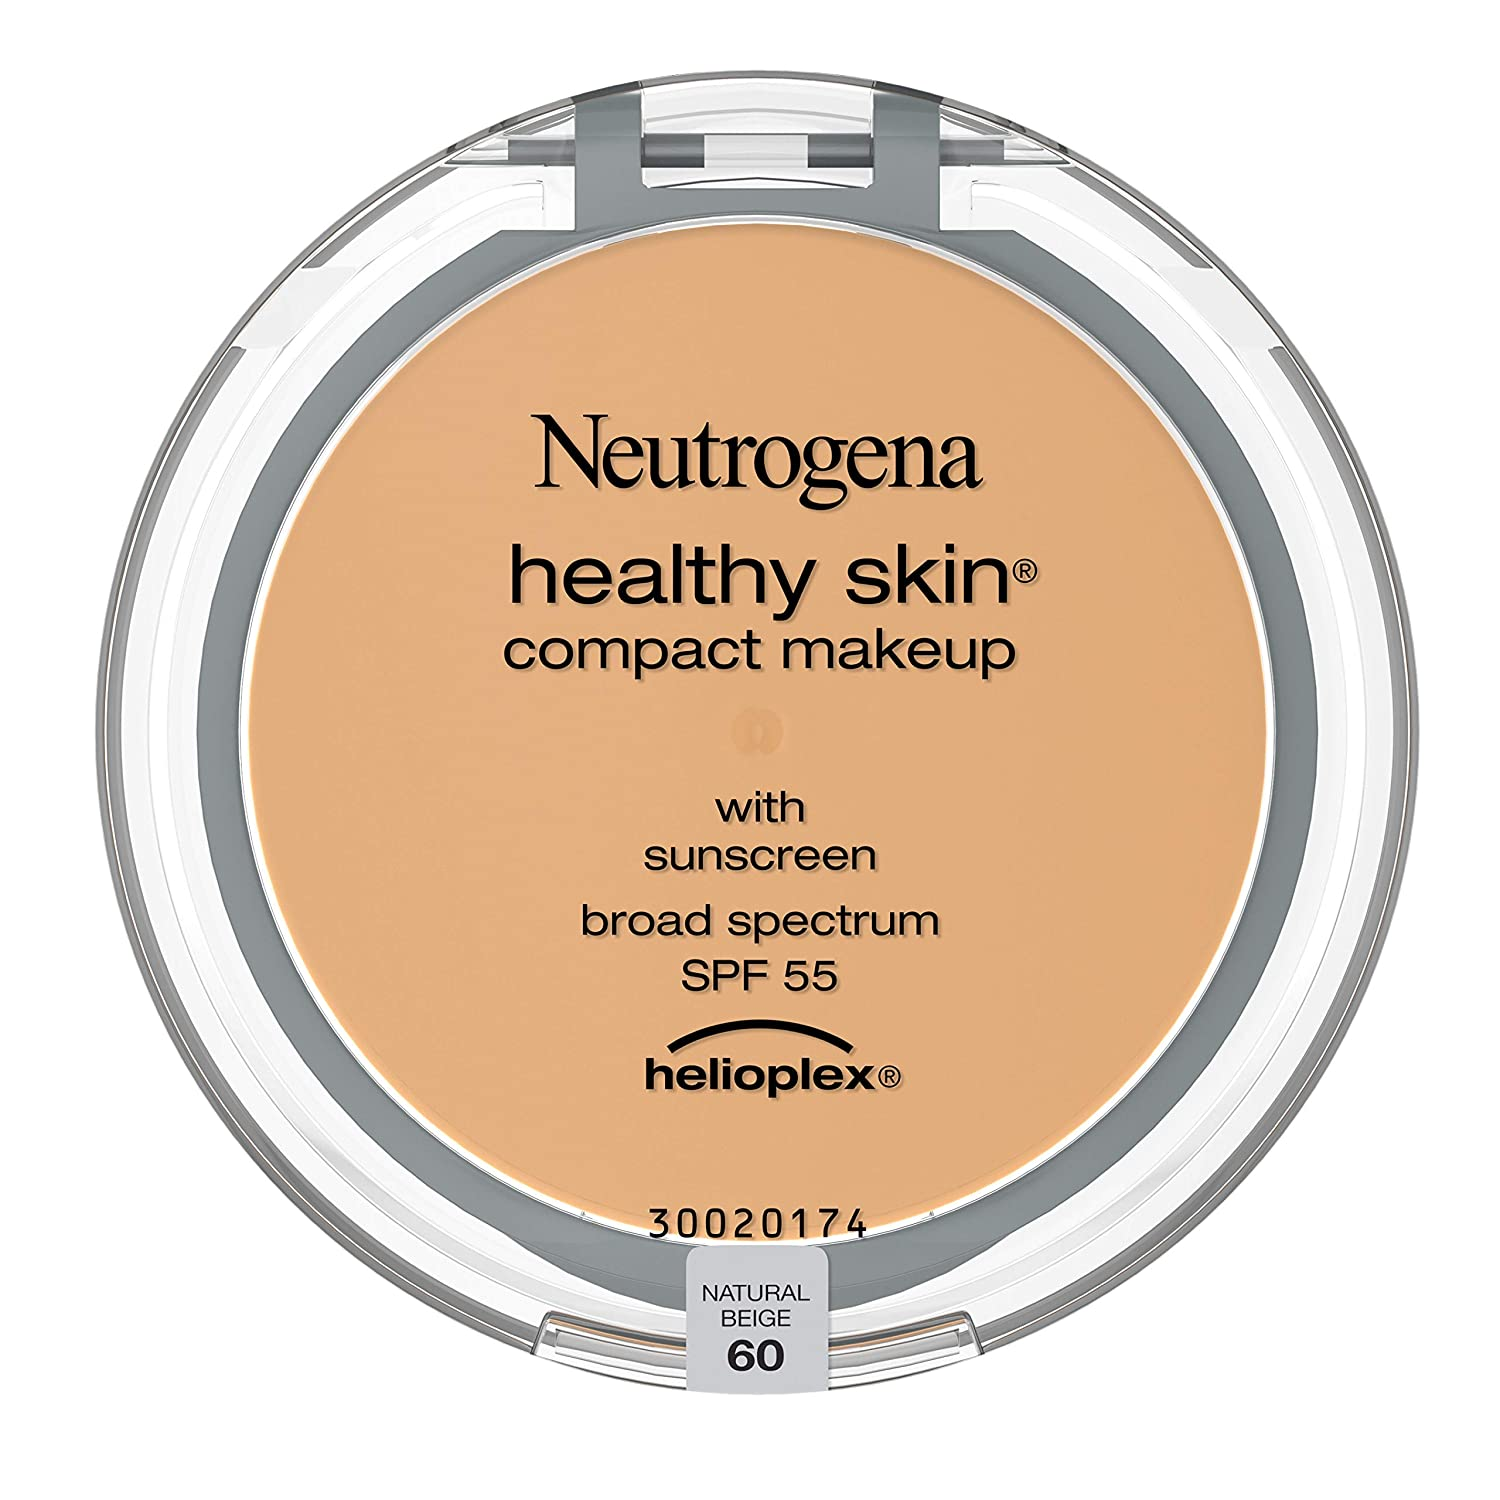 Neutrogena Healthy Skin Compact Lightweight Cream Foundation Makeup with Vitamin E Antioxidants, Non-Greasy Foundation with Broad Spectrum SPF 55, Natural Beige 60, .35 oz : Beauty